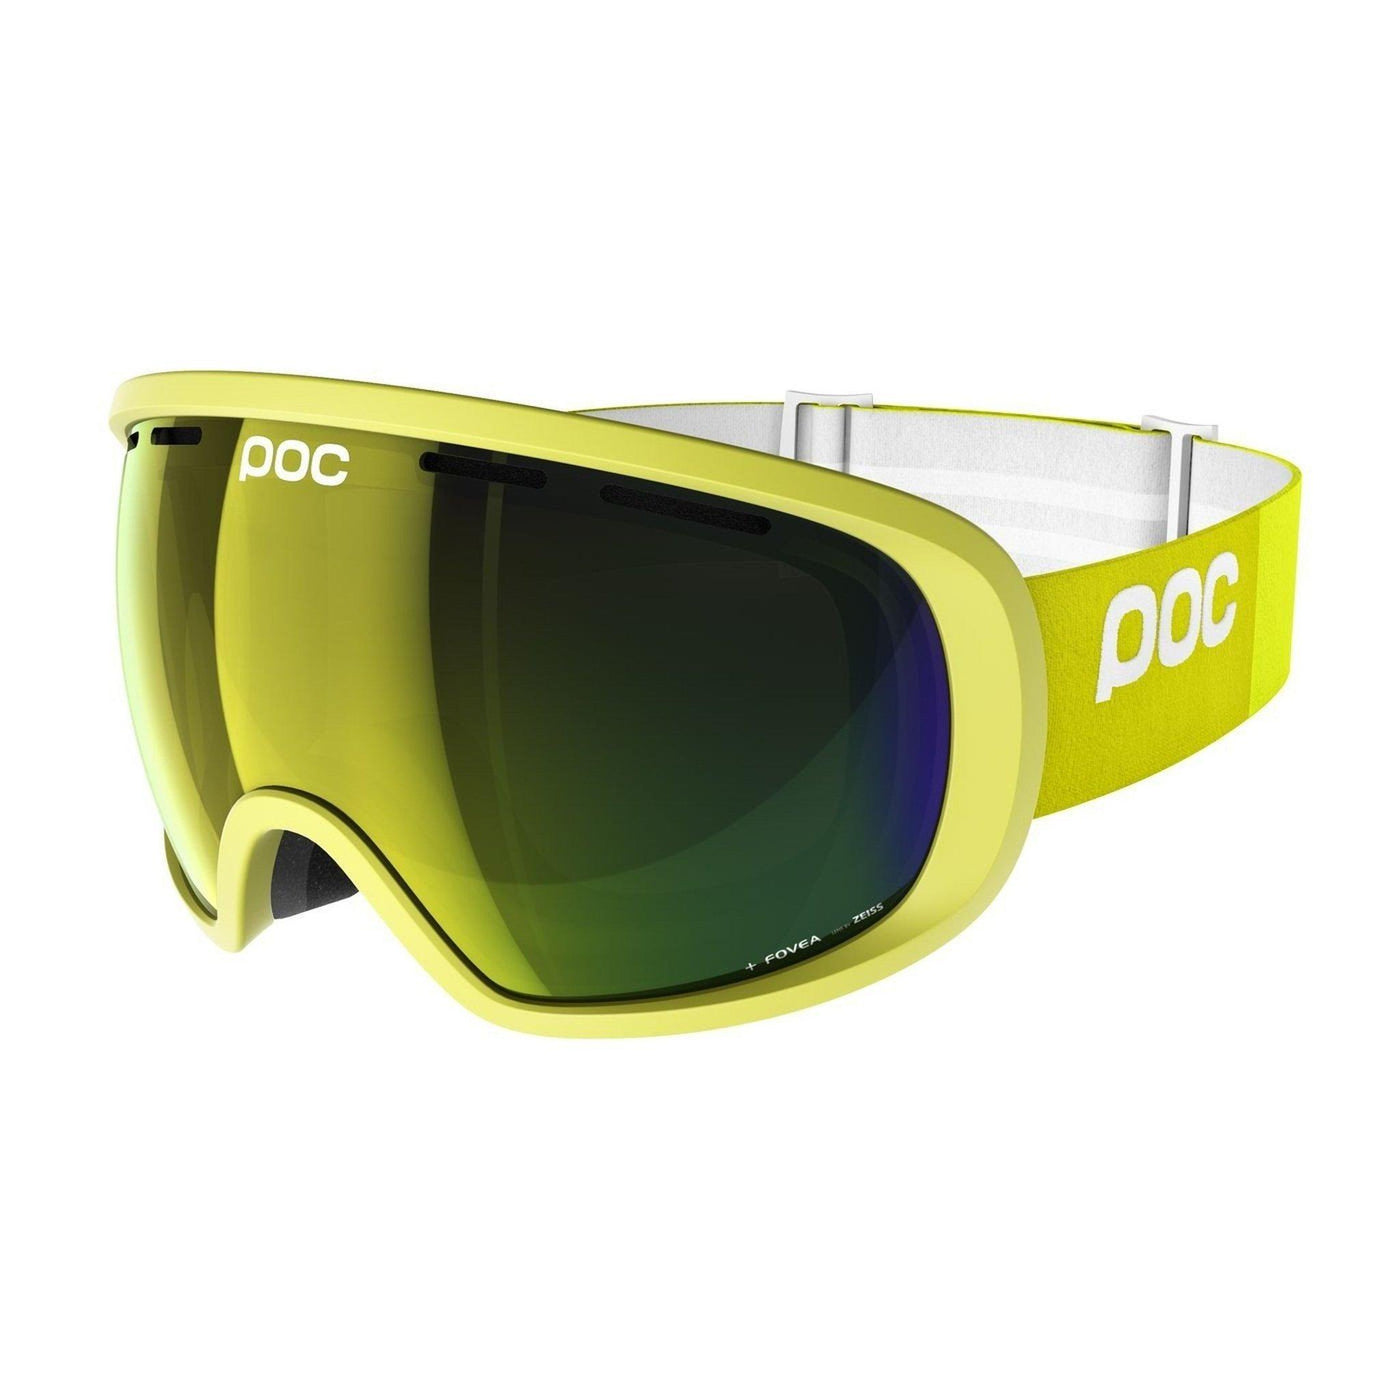 Fovea Ski Goggles POC Hexane Yellow OS